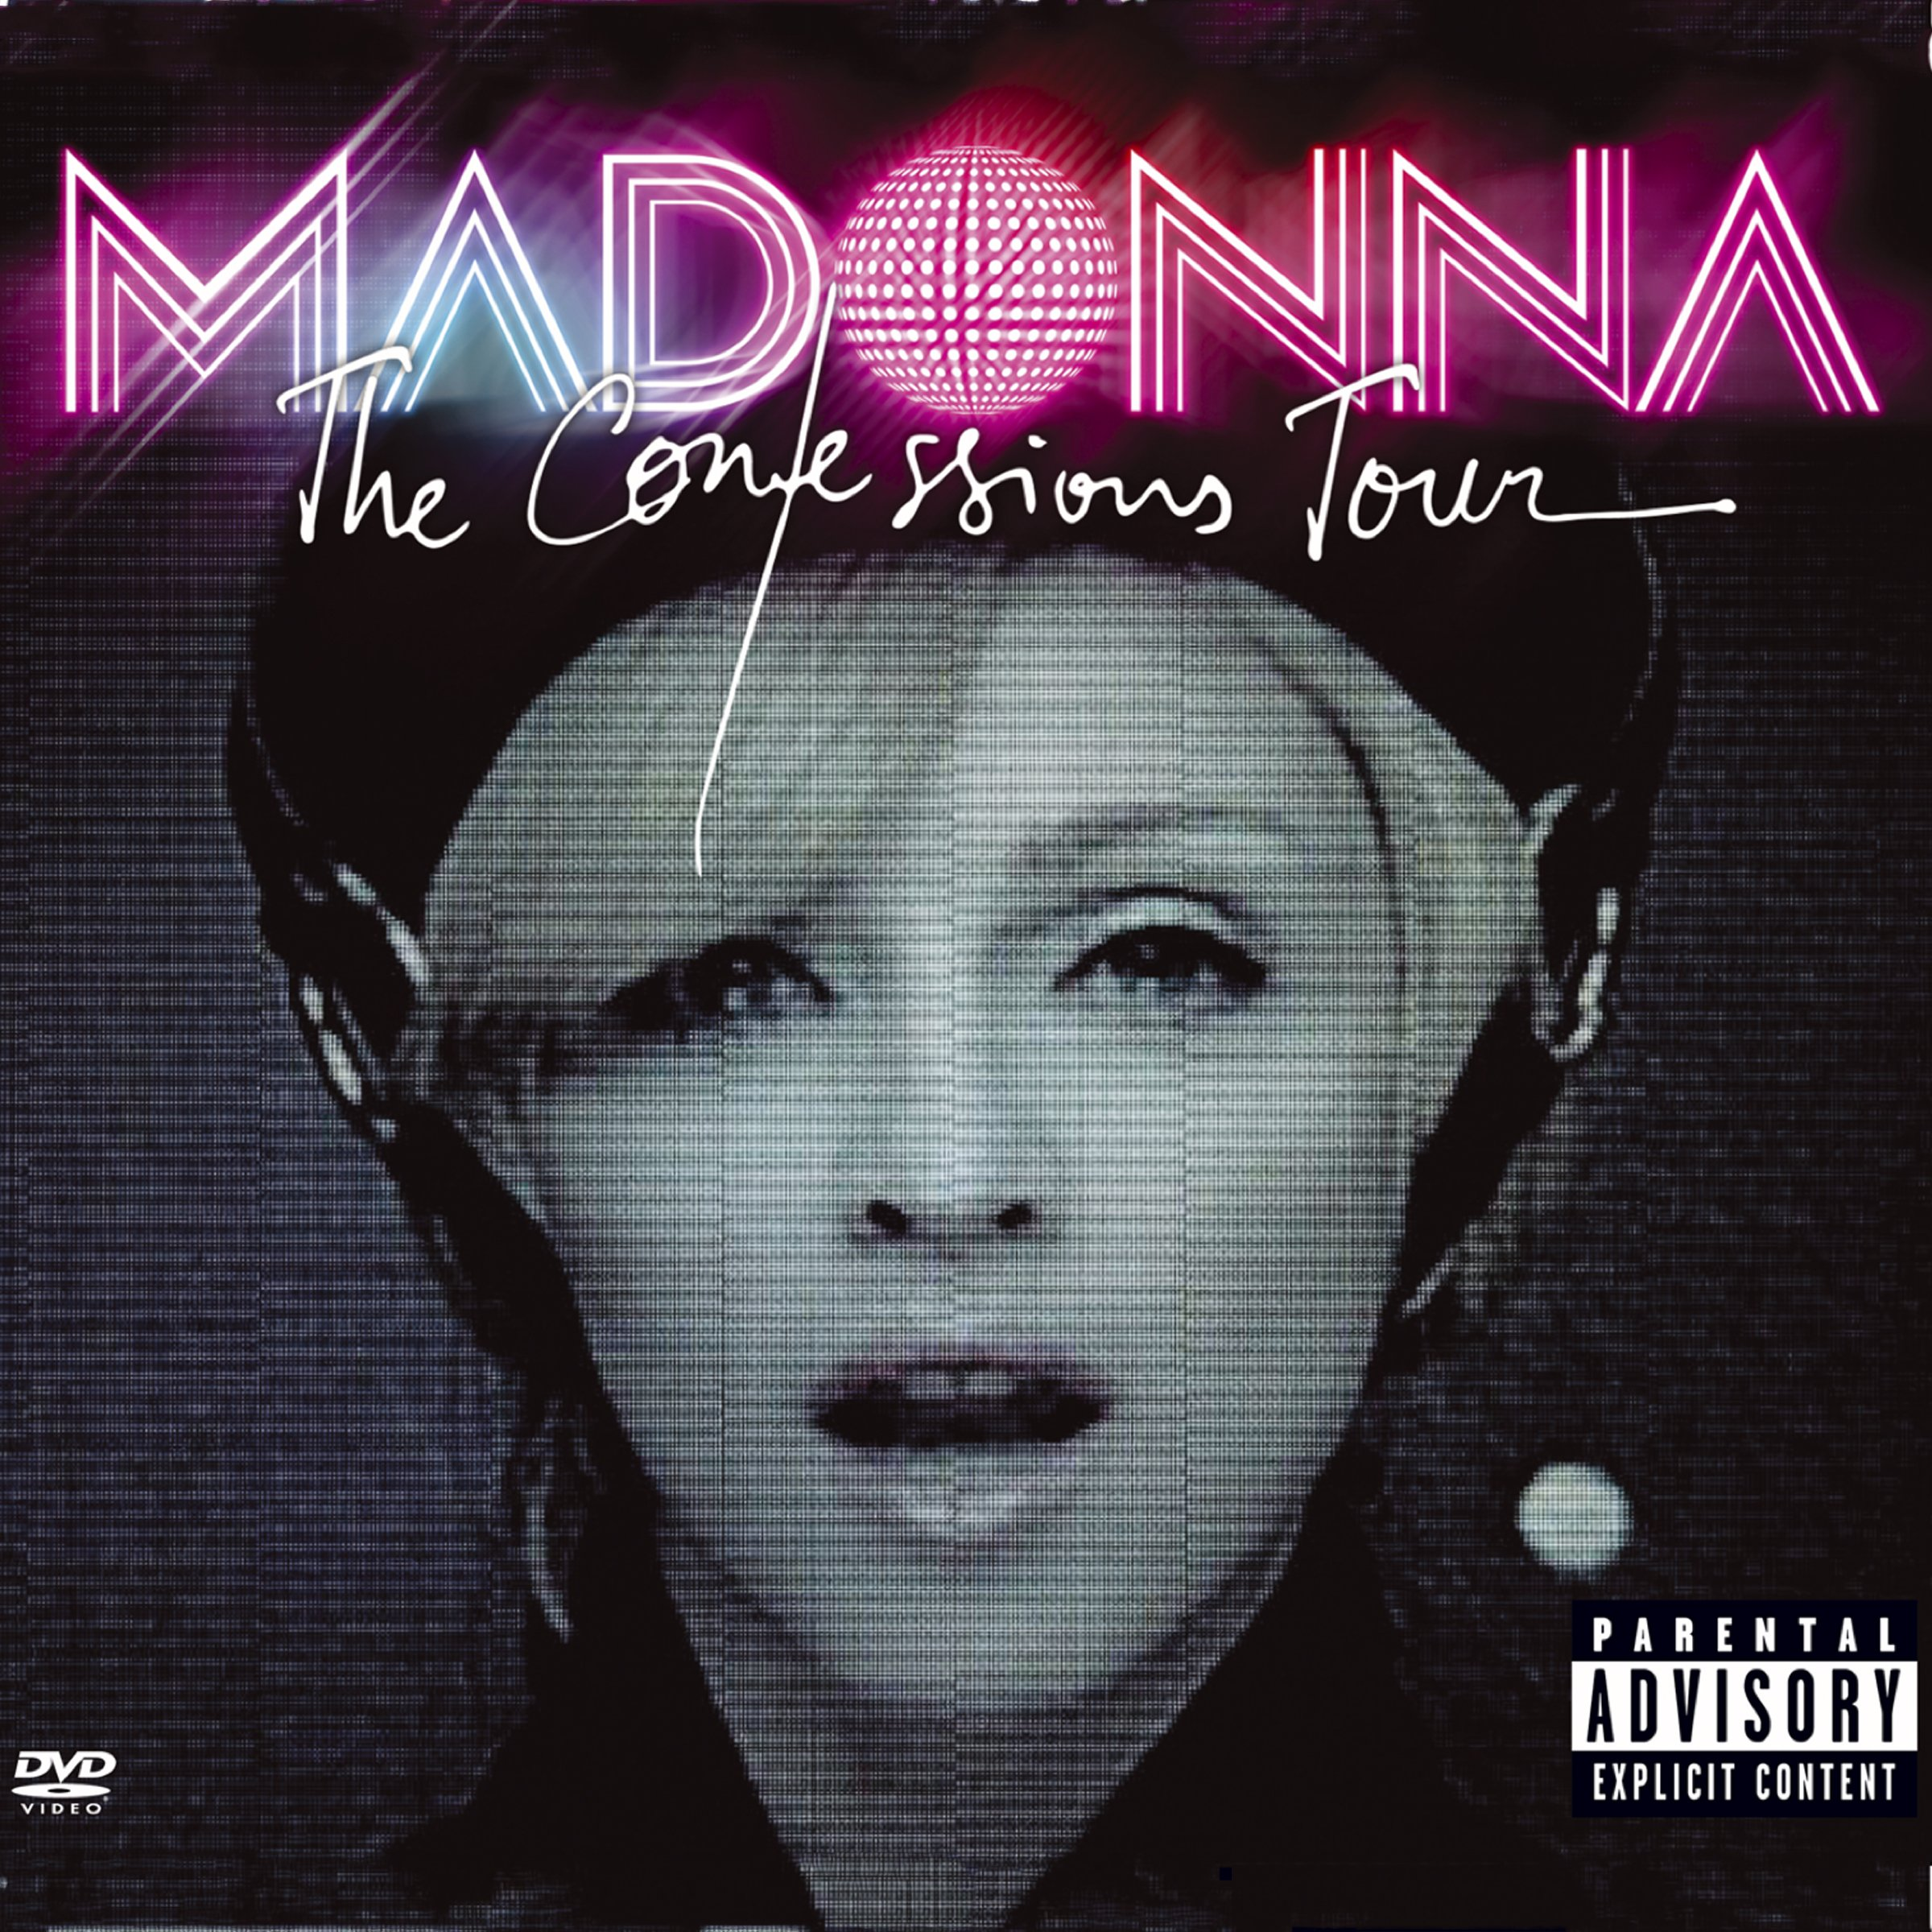 The Confessions Tour - Live from London (CD+DVD) by Warner Bros